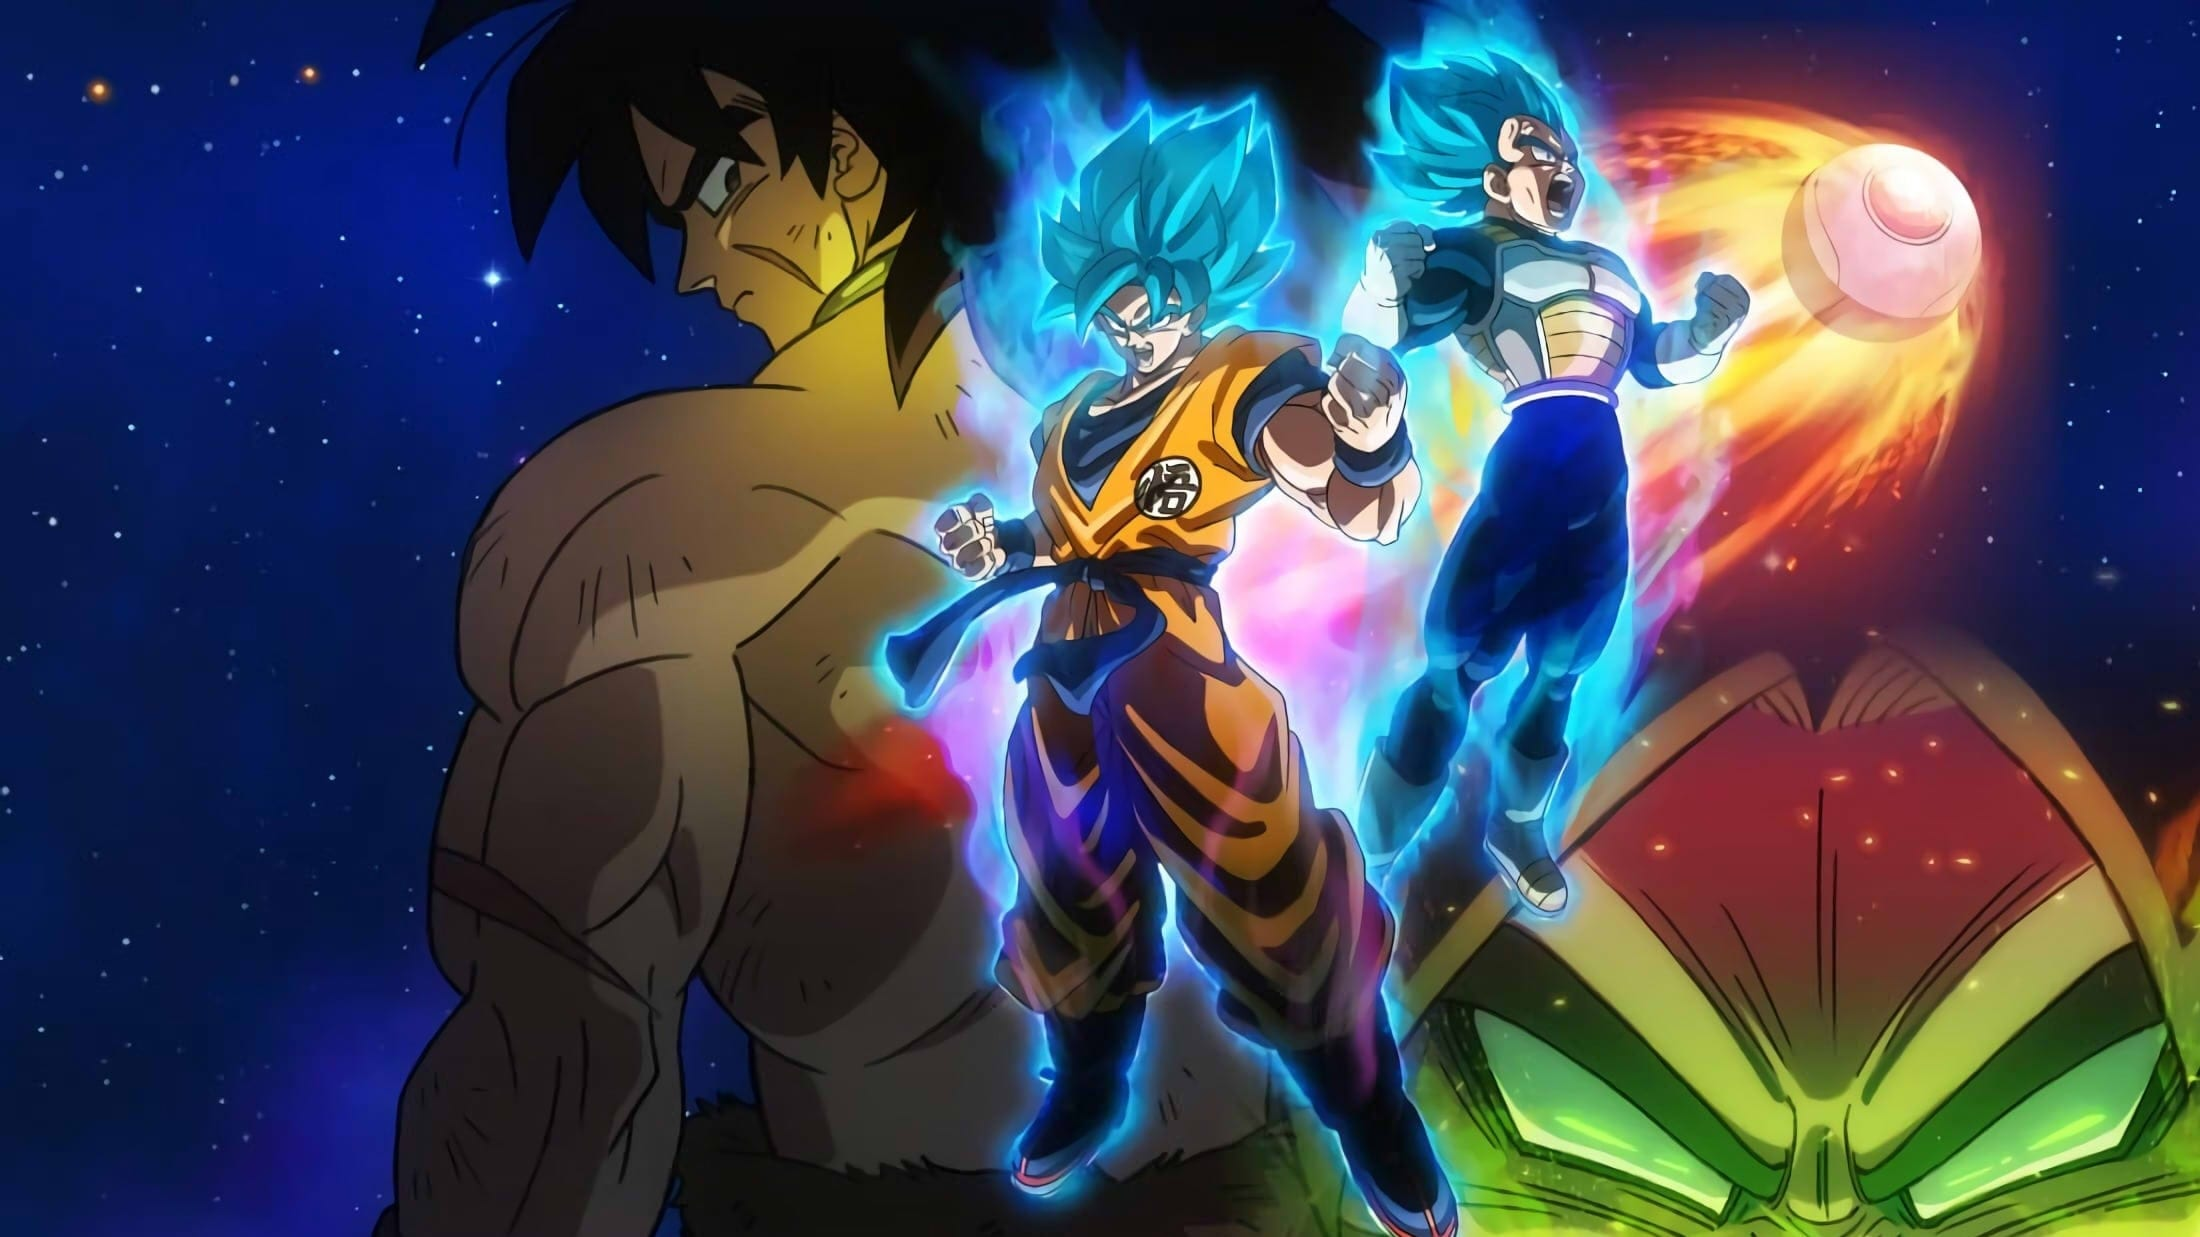 Dragon Ball Super: Broly (2018)